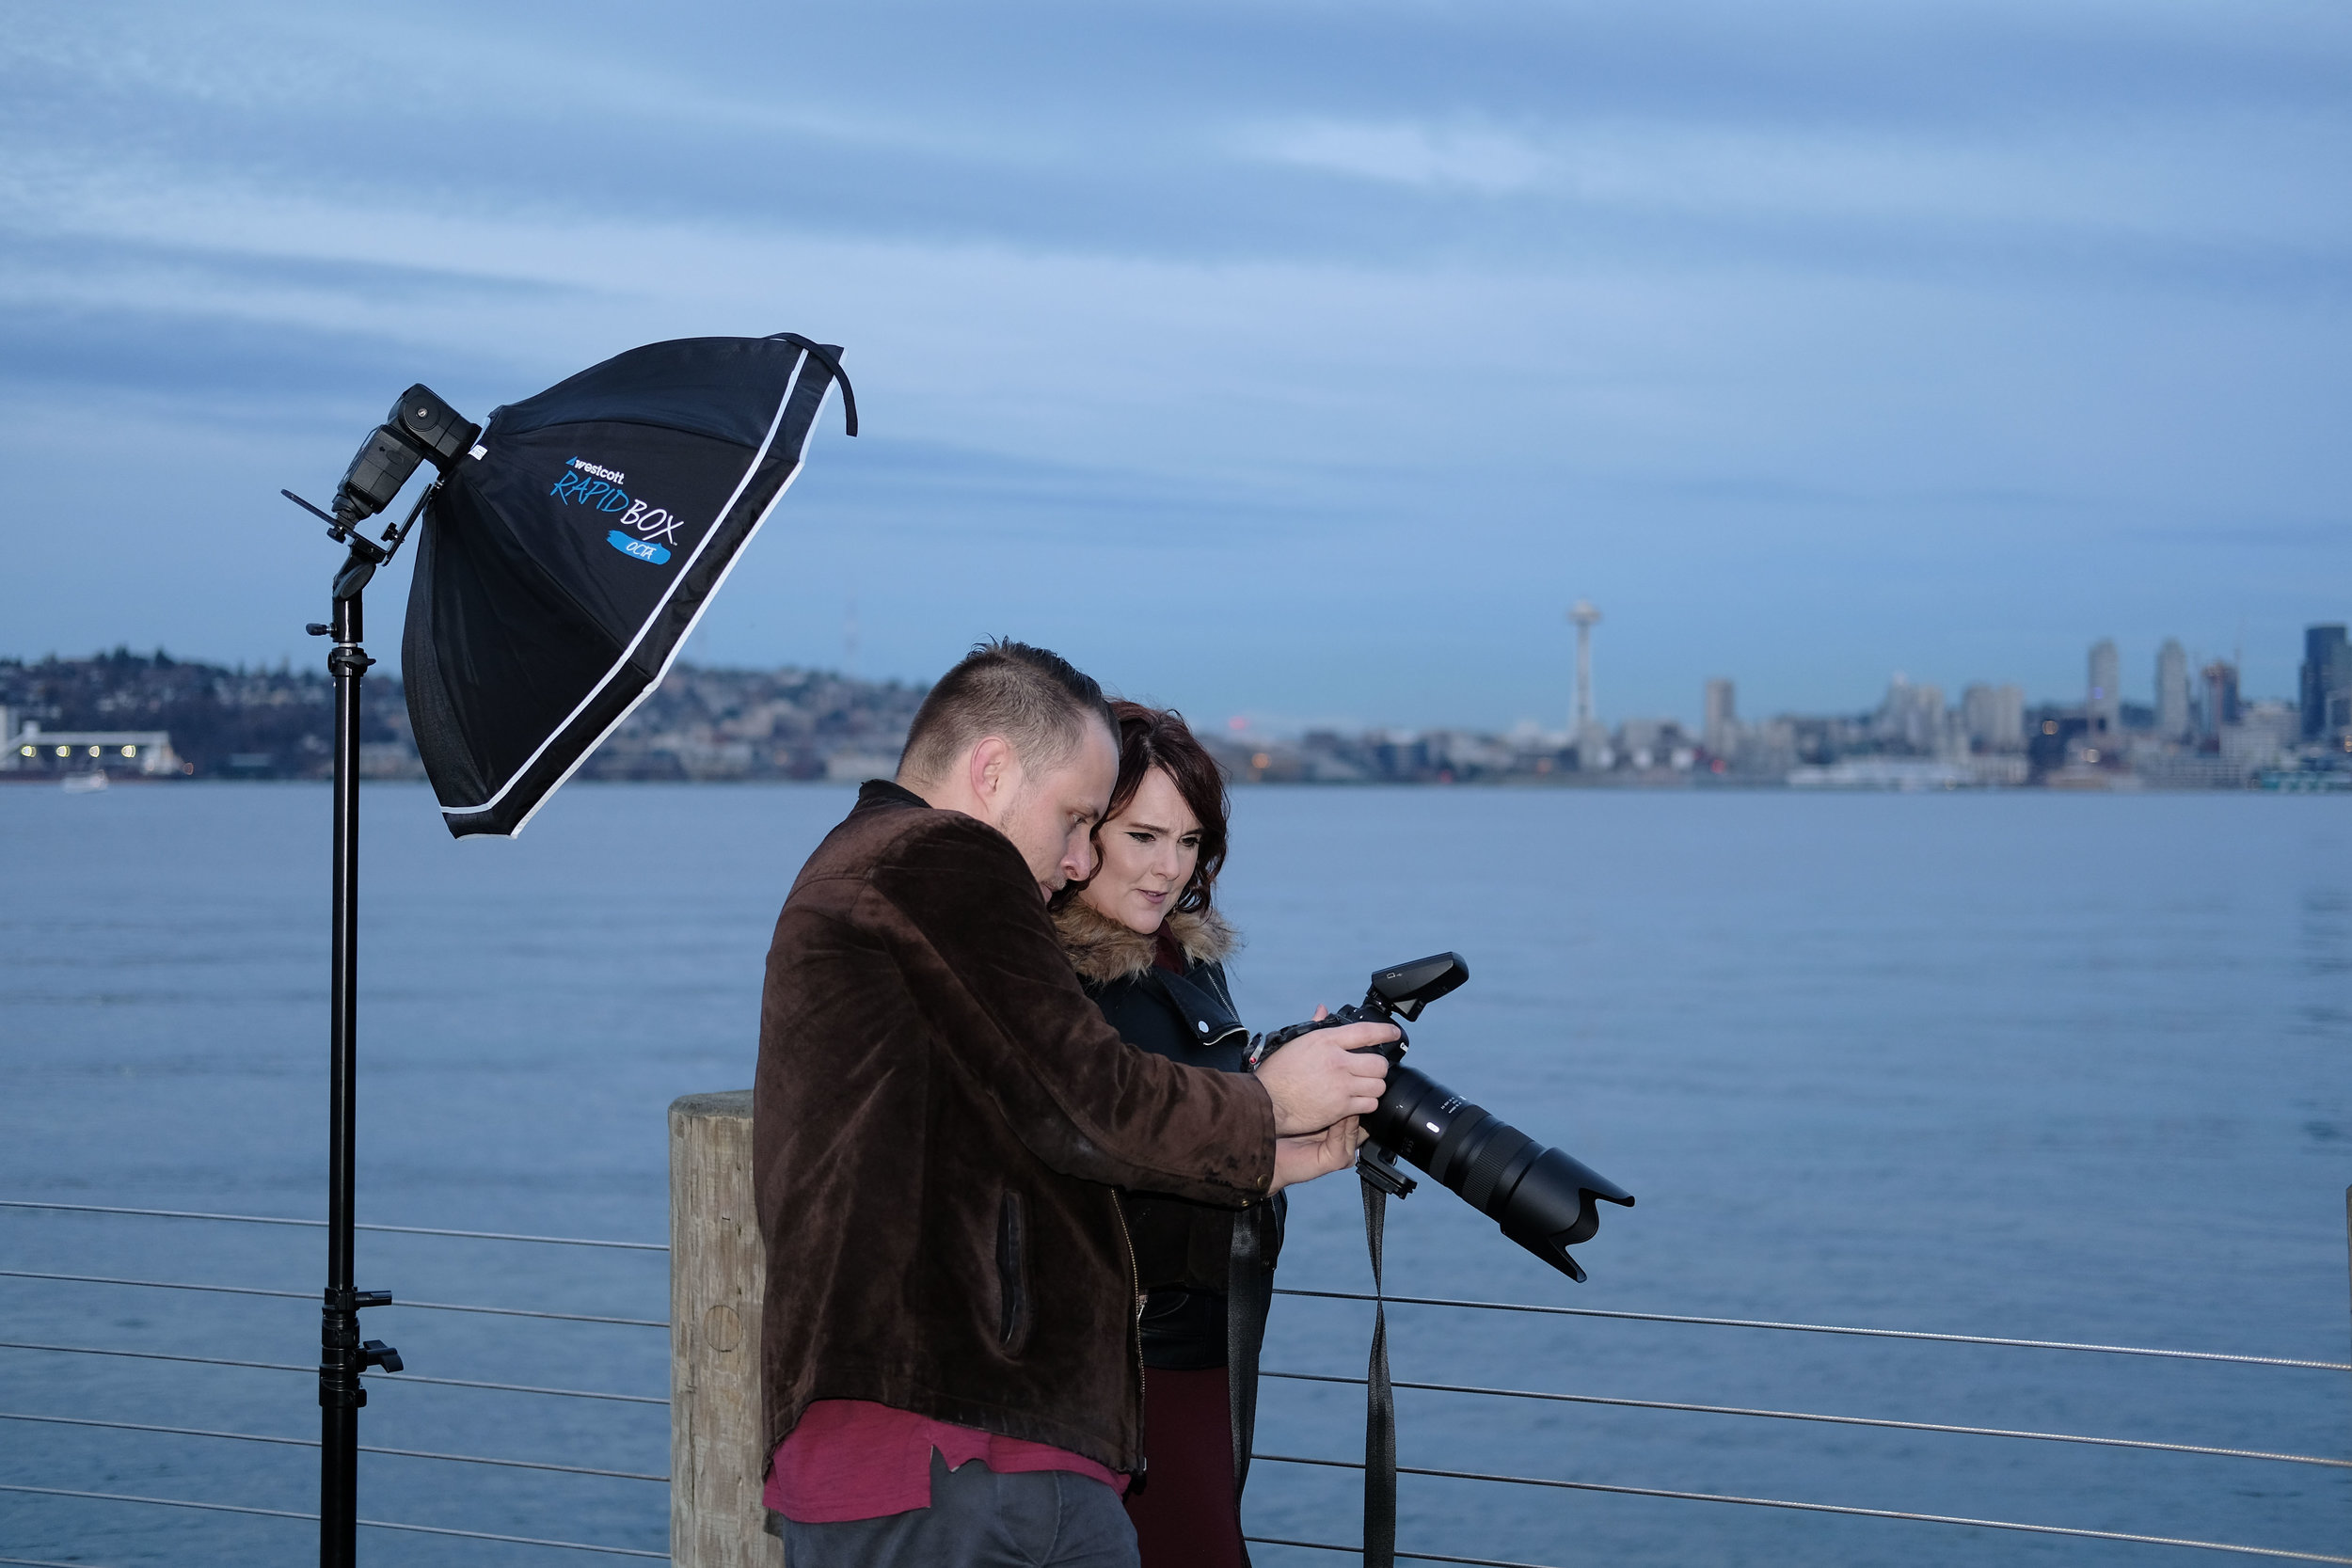 There's a theme running through these Behind the Scenes shots - we work closely with people throughout our shoots.